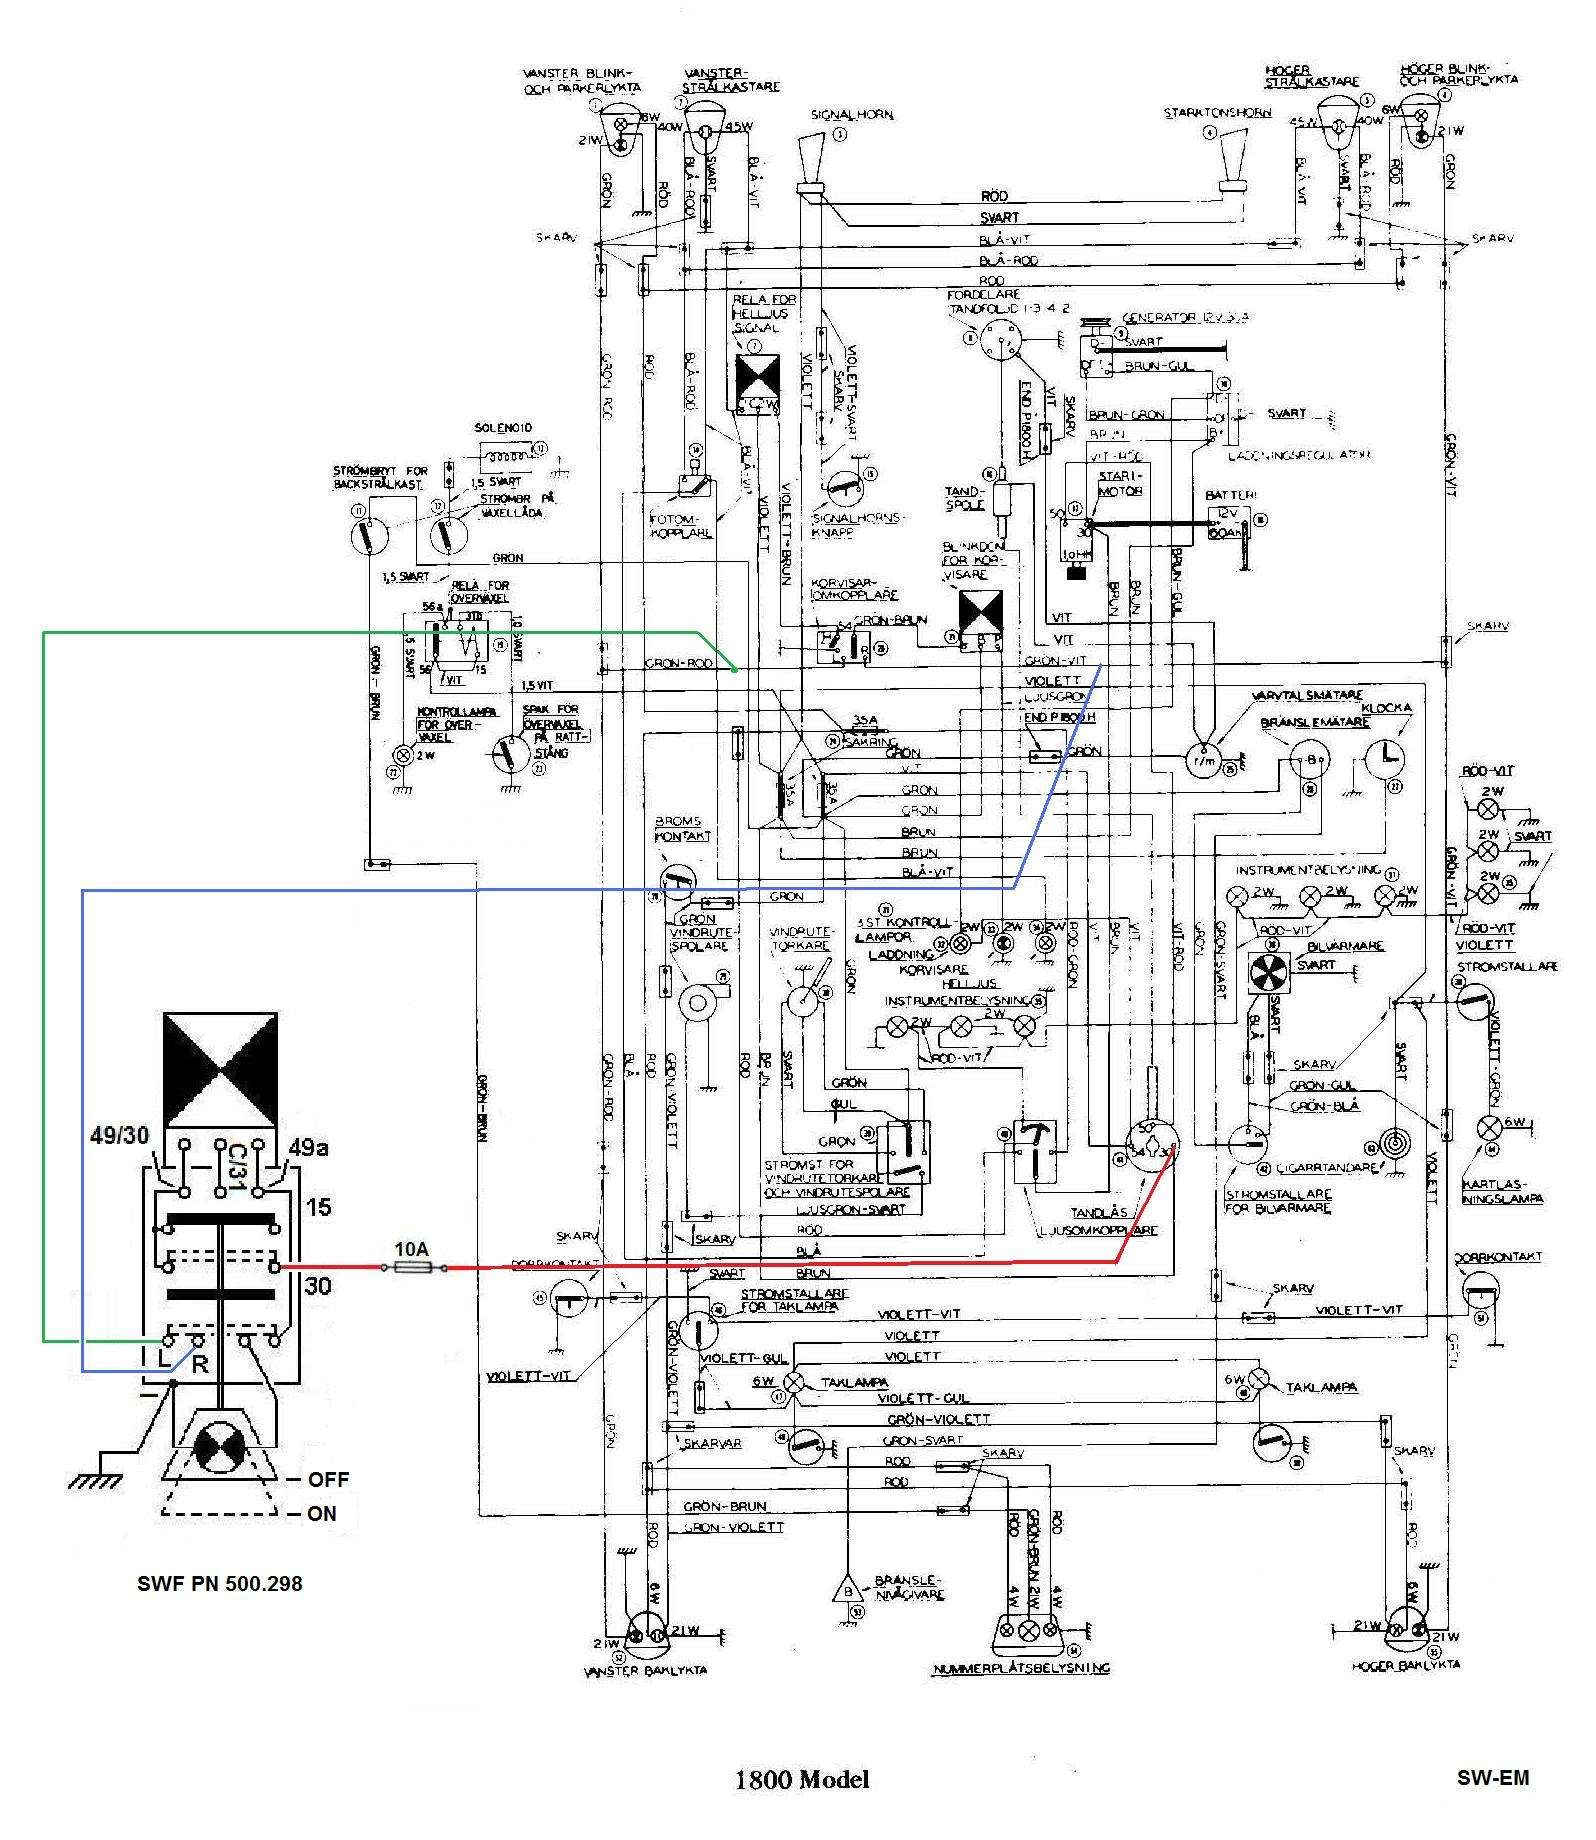 Wiring Diagram 3 Way Switch Beautiful Swf Wiring Diagram